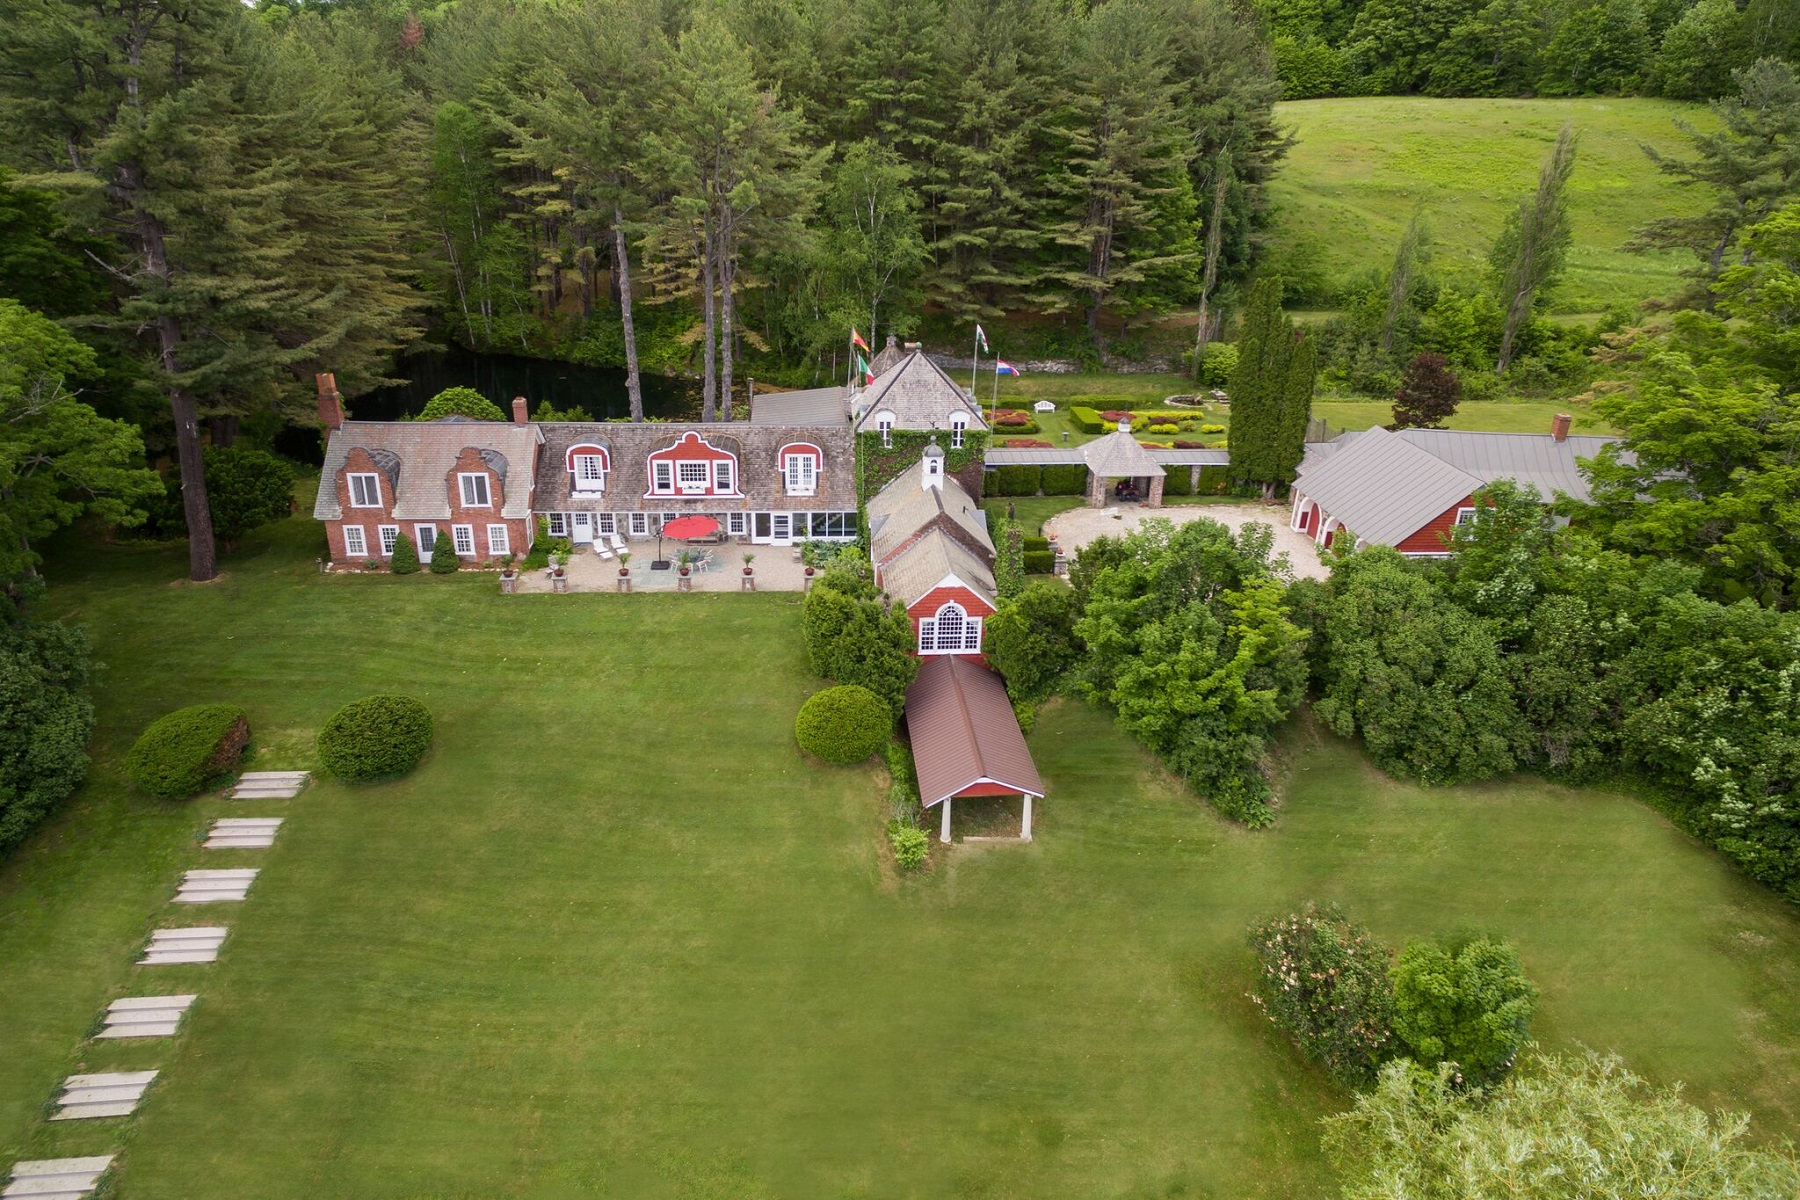 Casa Unifamiliar por un Venta en Reading Farms 188 Reading Farms Road Reading, Vermont, 05062 Estados Unidos